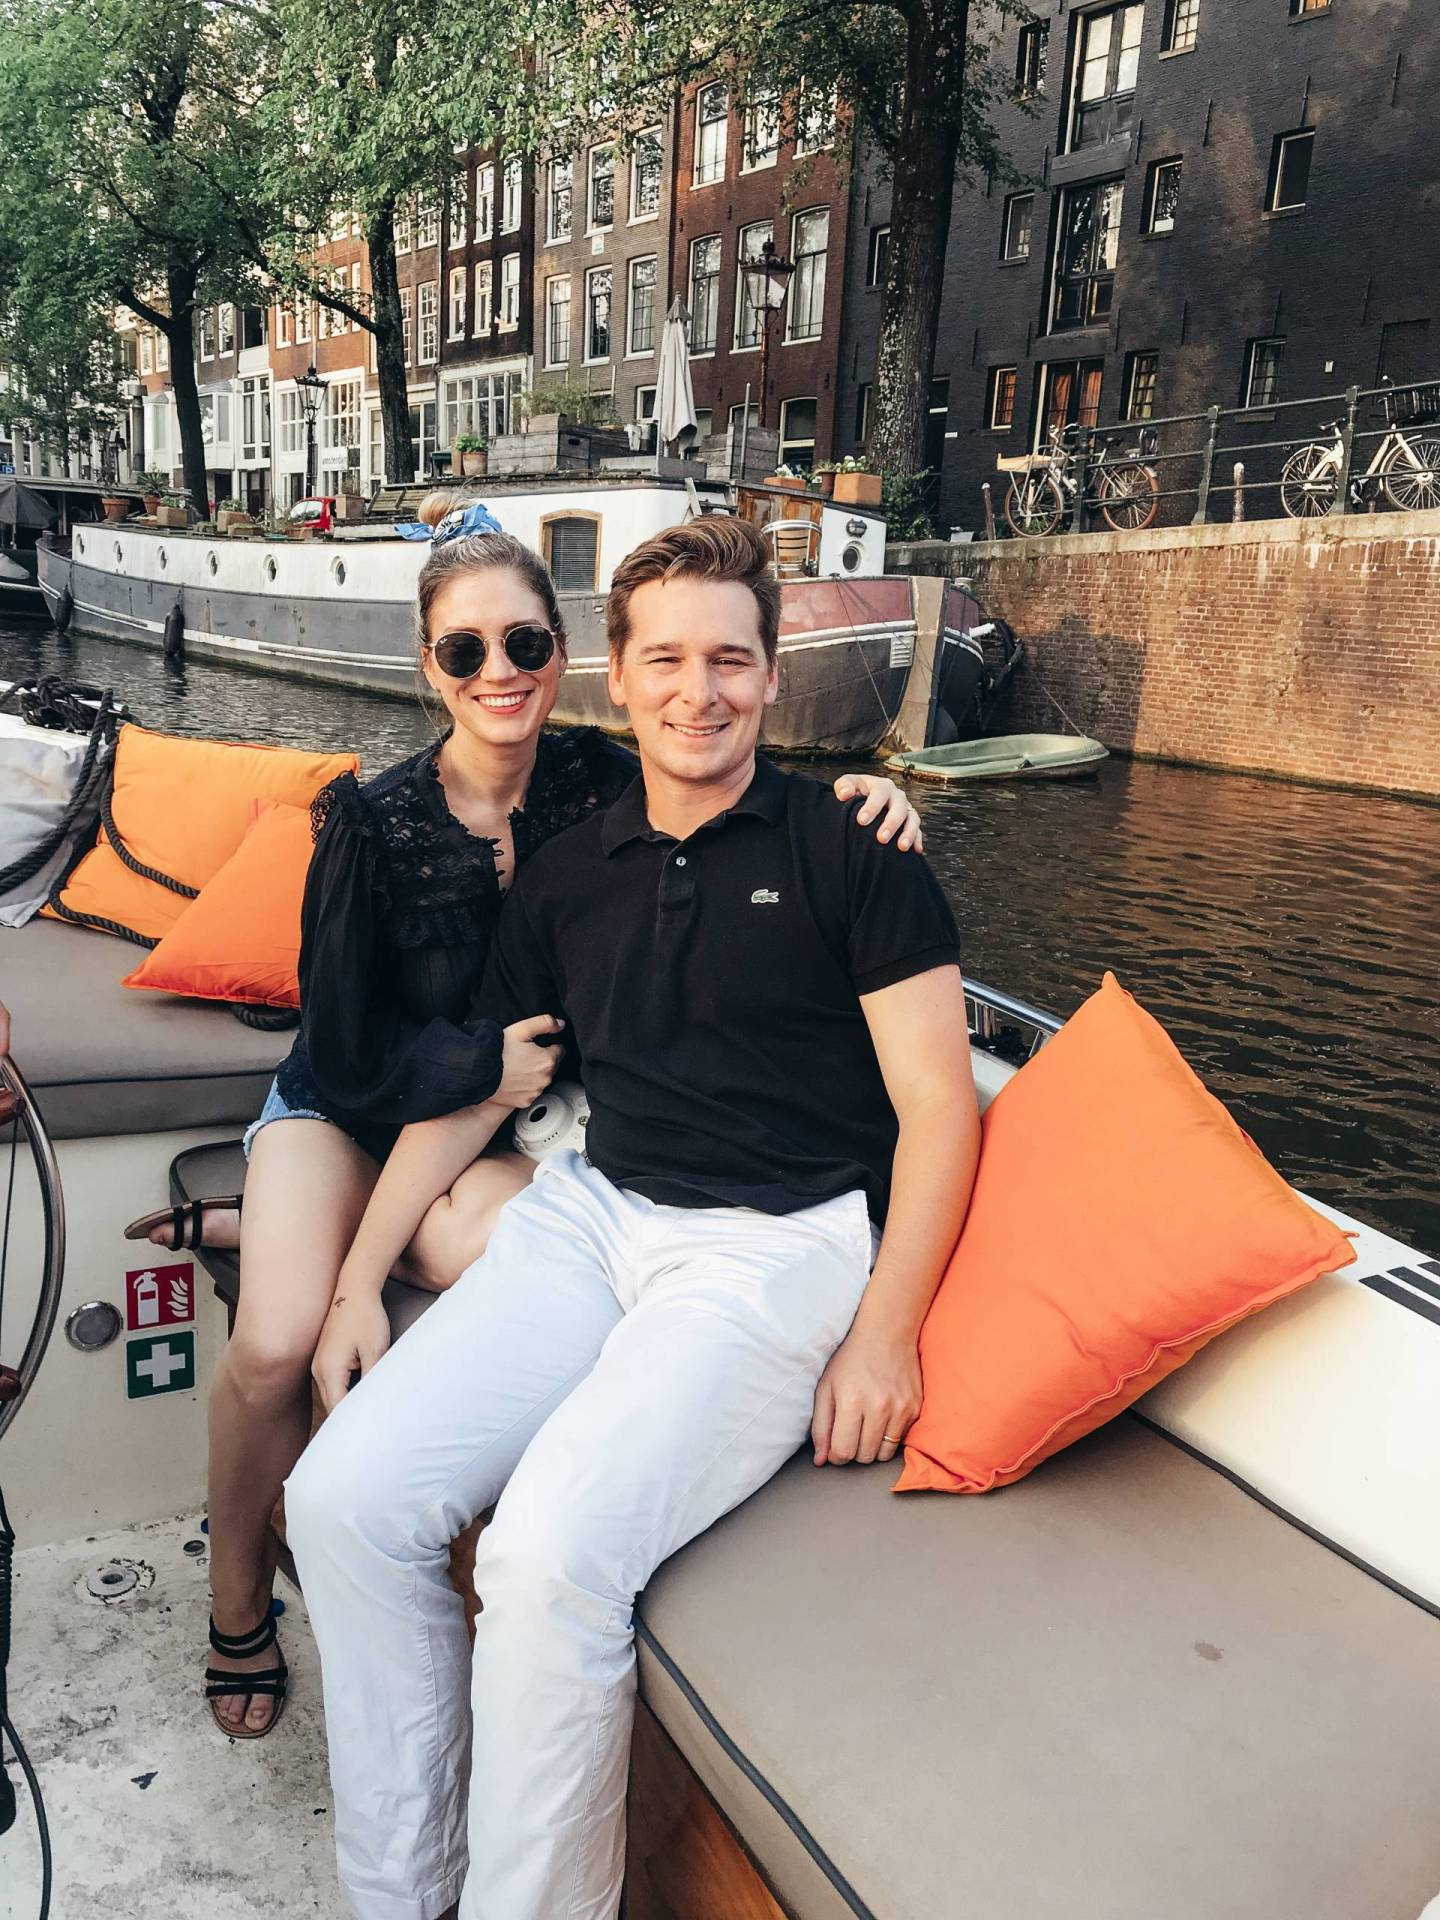 My favorite thing we did while visiting Amsterdam? Hands down our canal cruise with Flagship Amsterdam! Click through for more of what we did during our Summer trip to the Dutch capital.